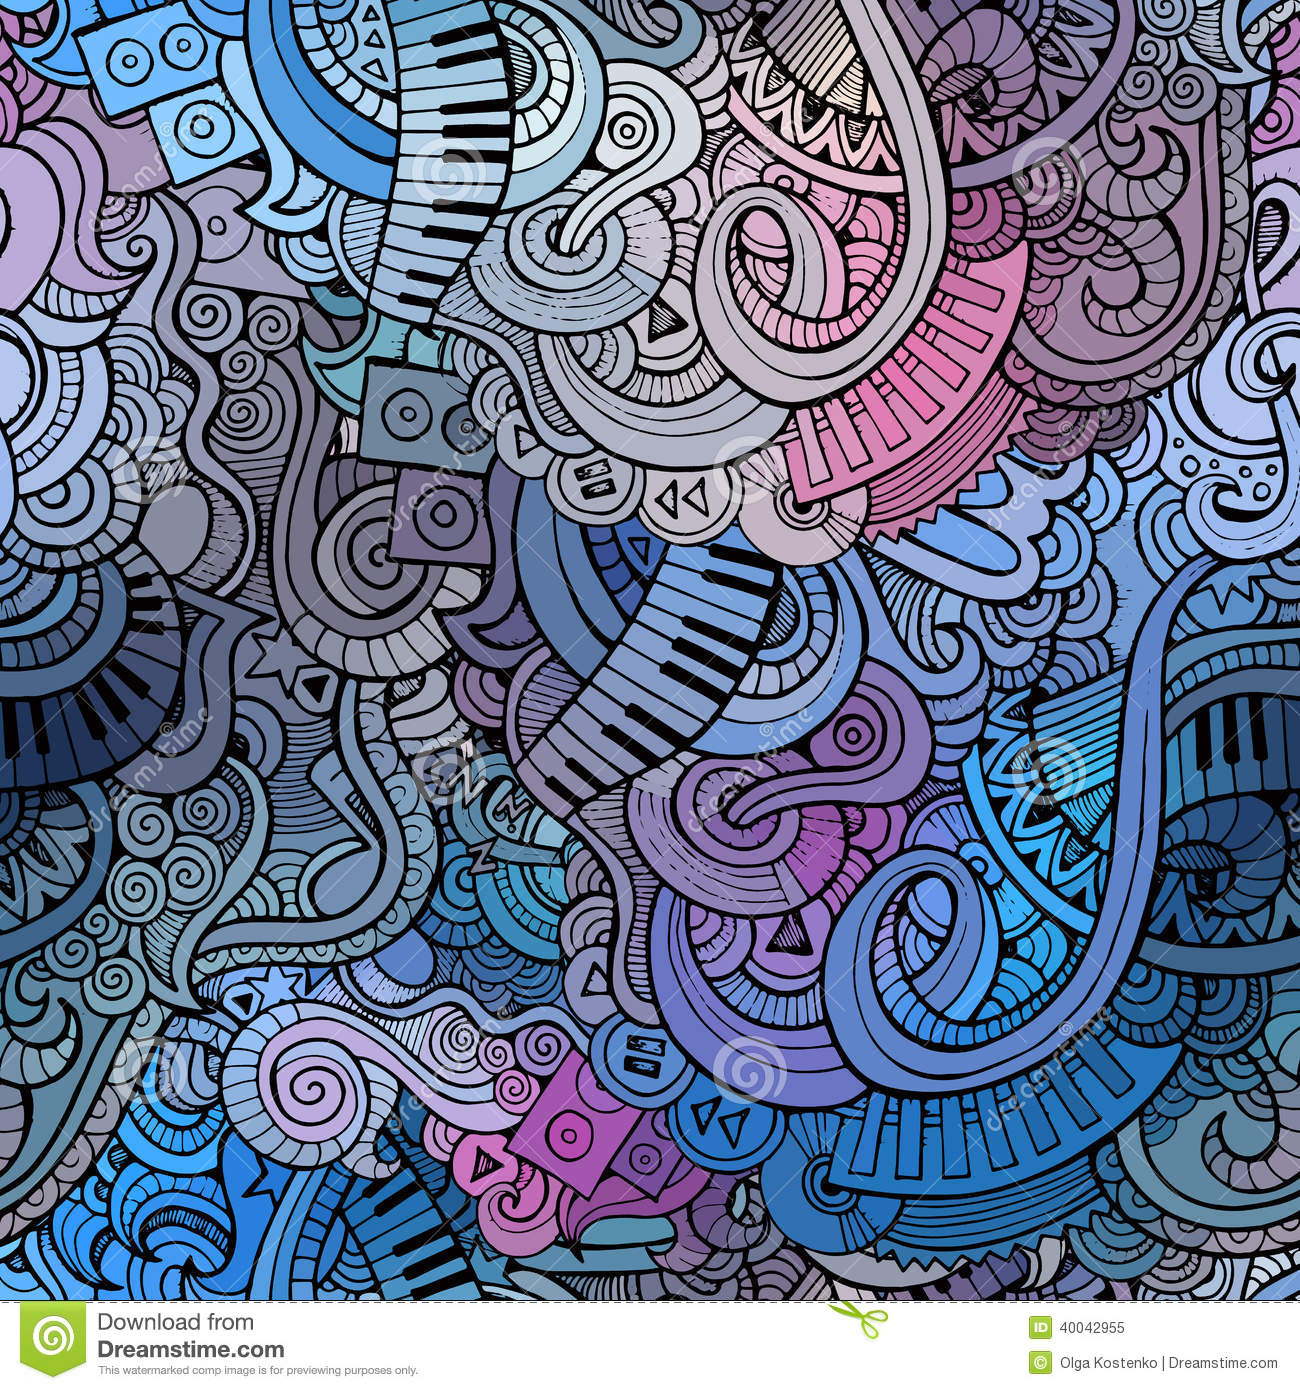 Royalty Free Stock Photo Abstract Decorative Doodles Music